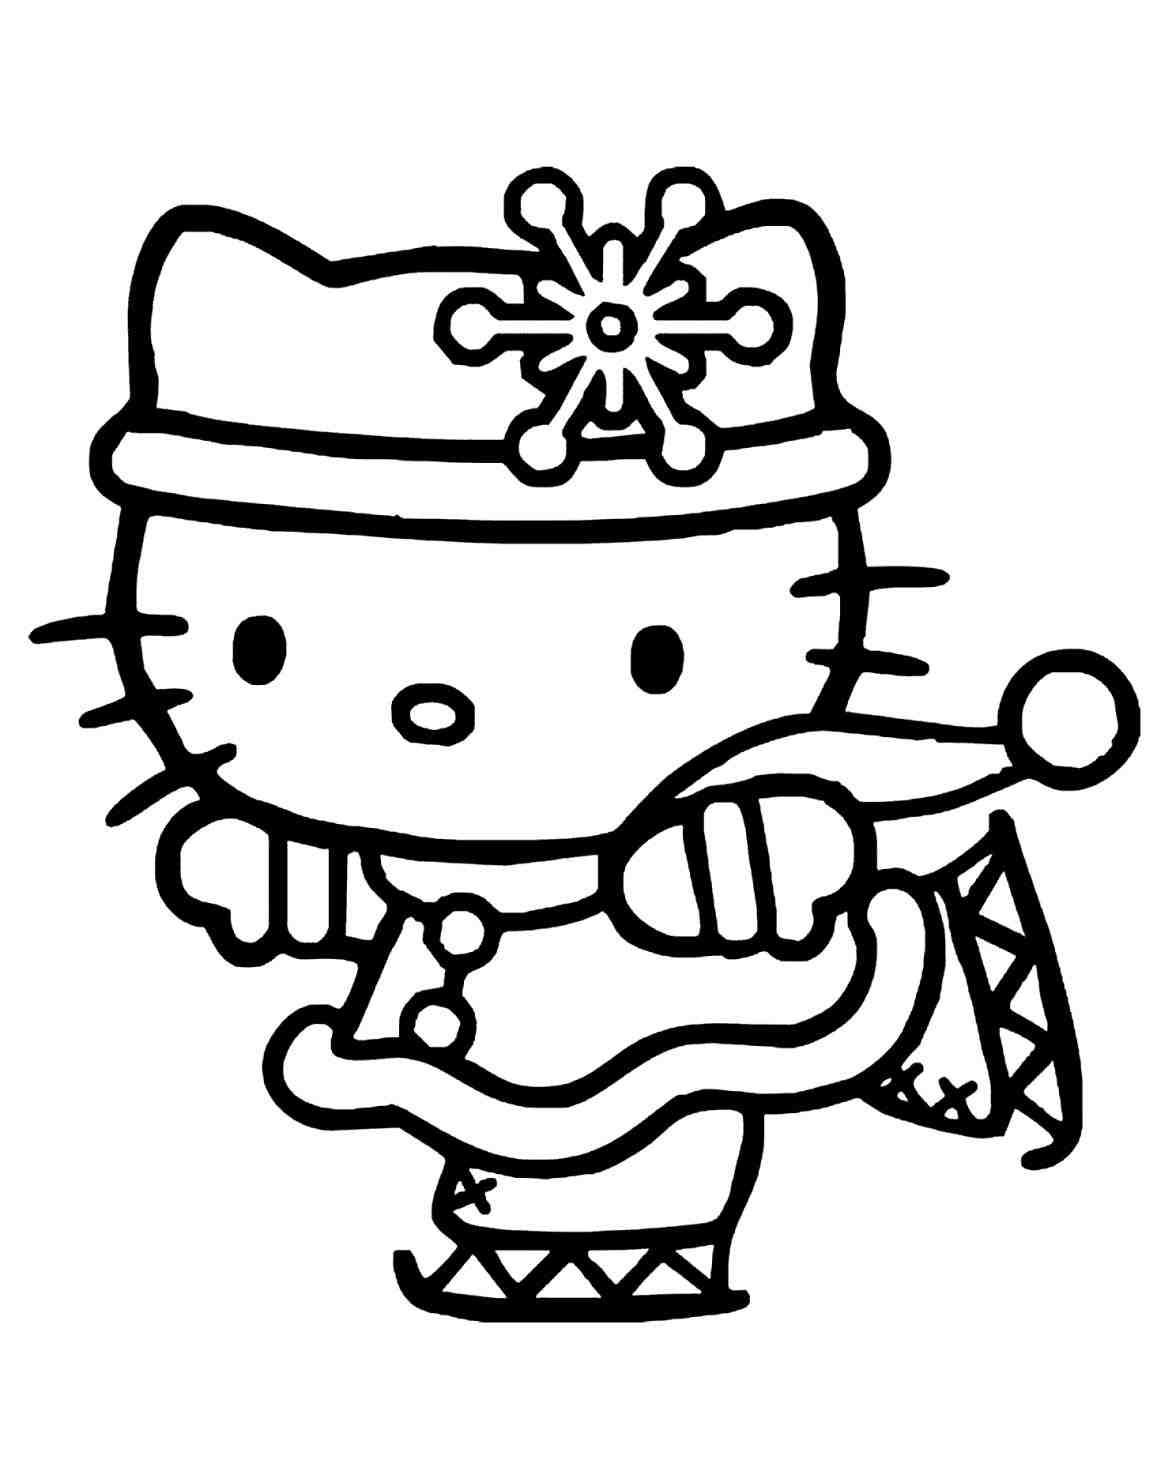 Hello Kitty Christmas Ice Skating Coloring Pages Printable And Book To Print For Free Find More Online Kids Adults Of